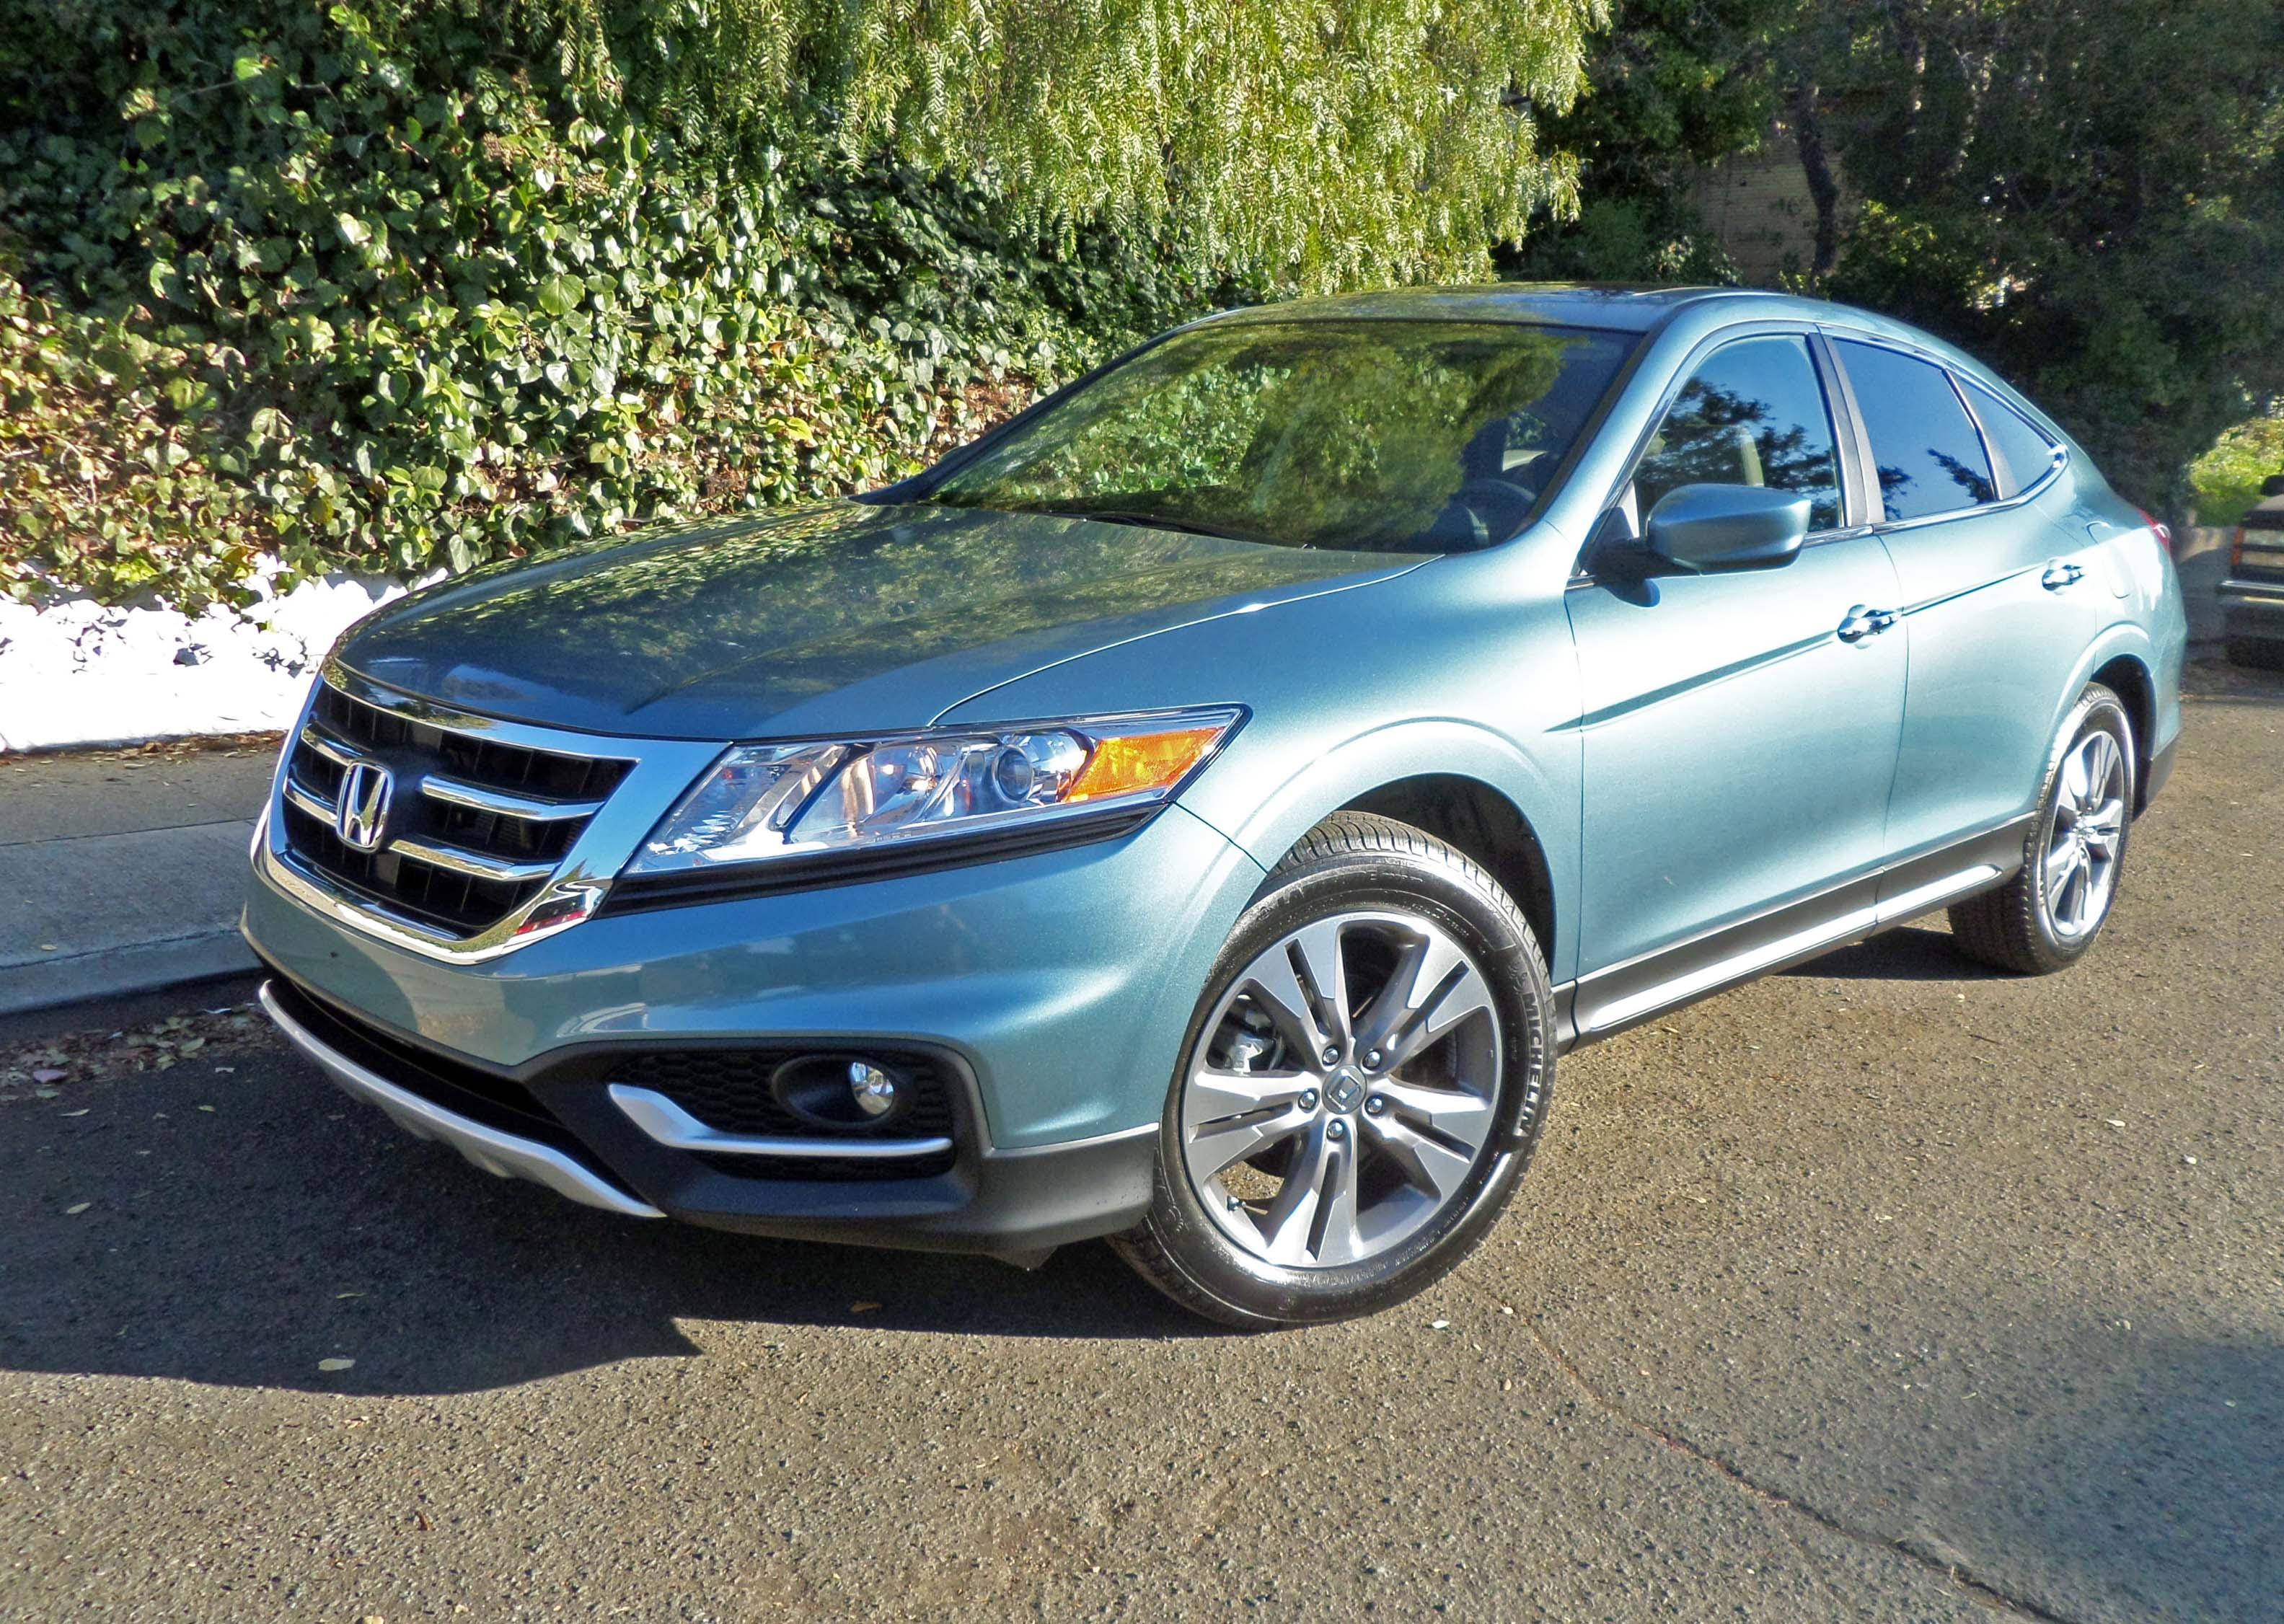 en ans l crosstour honda vehicle pre hands inventory seats accord owned interior heated leather used orl ex in free